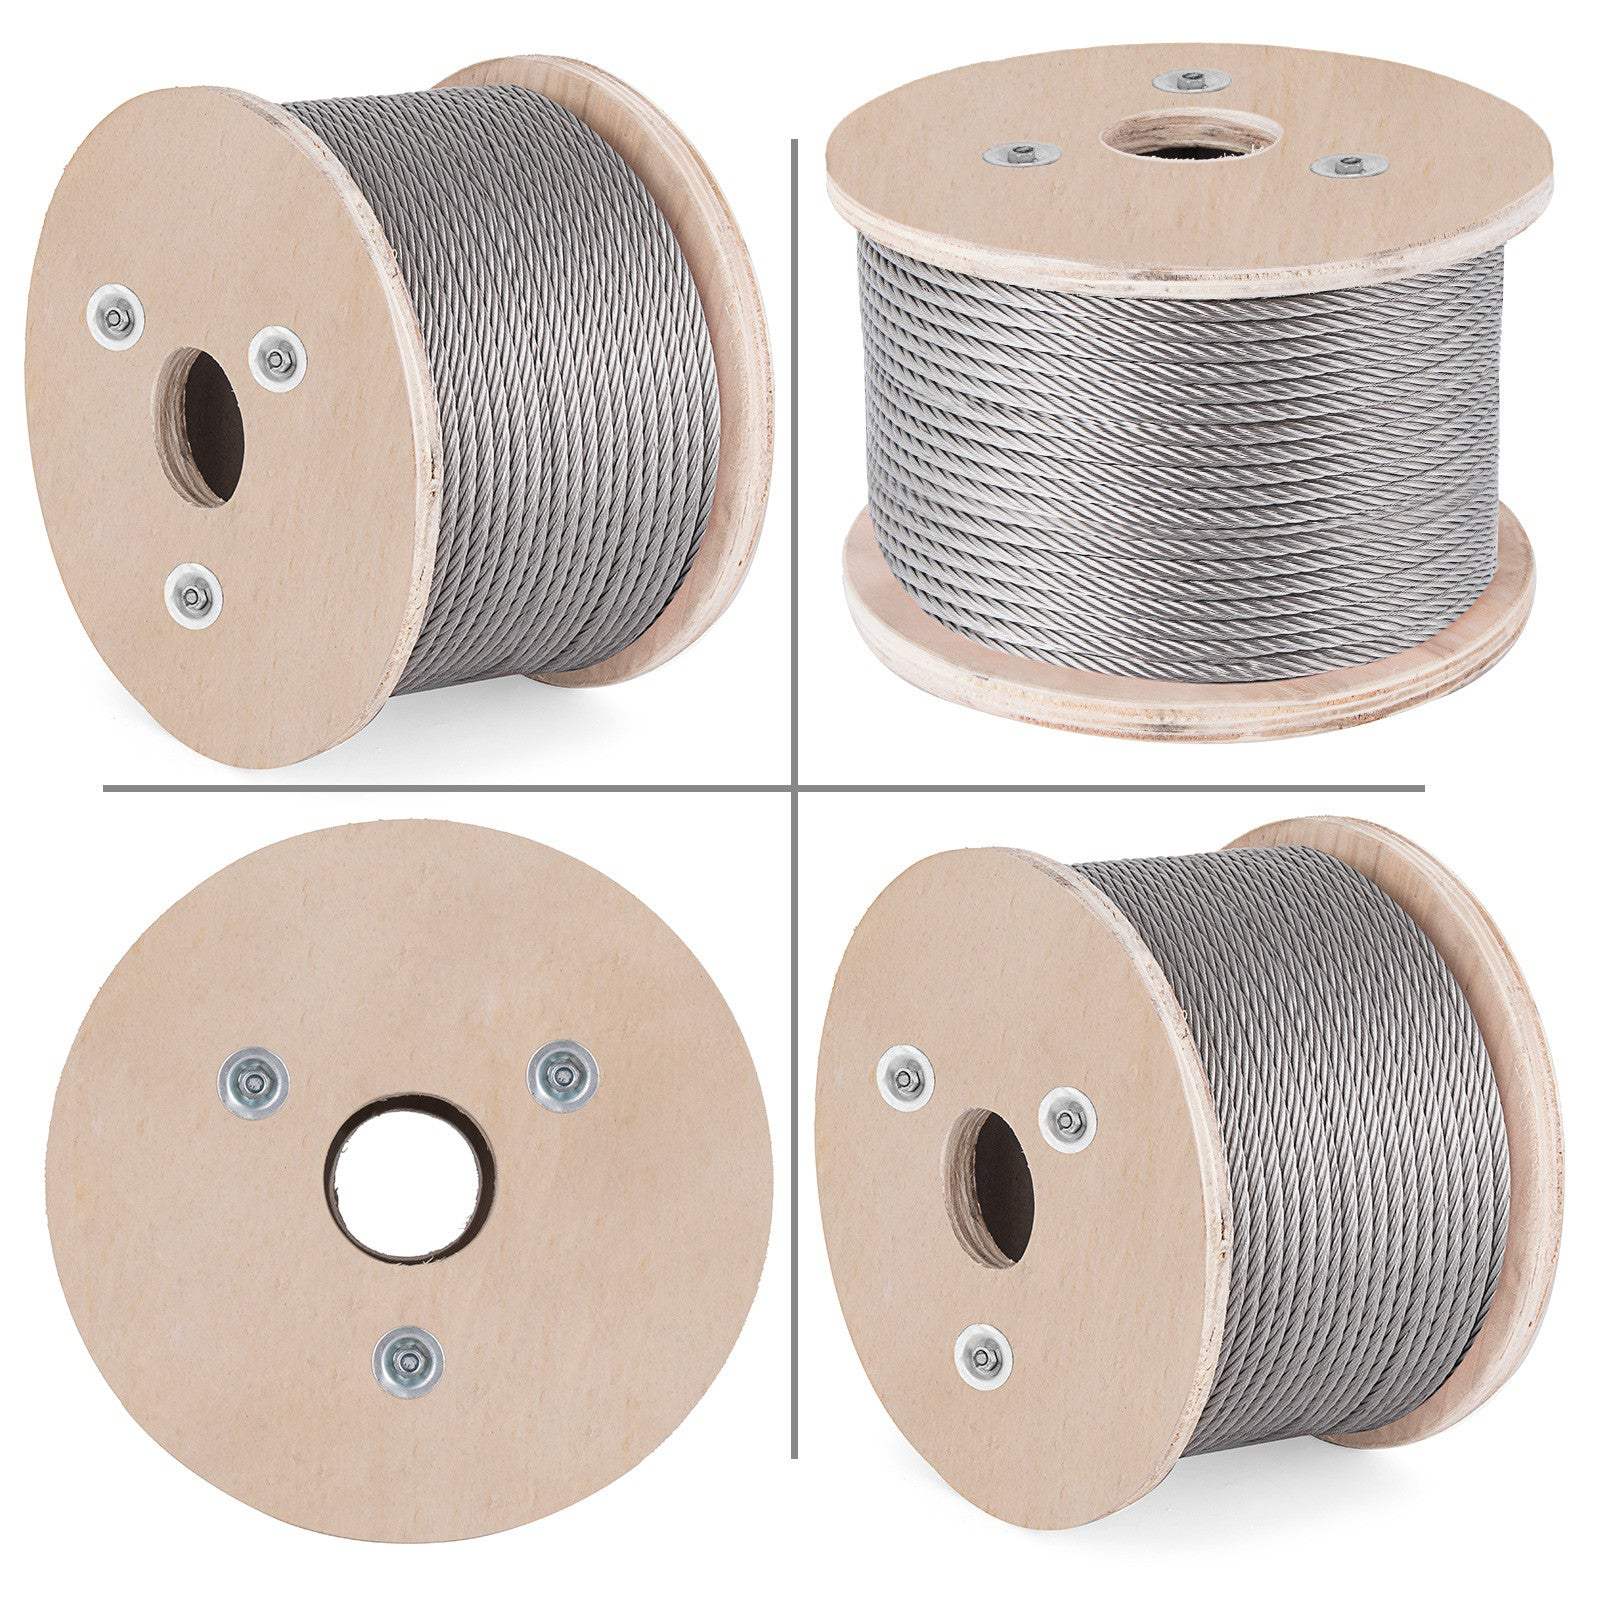 "T304 Stainless Steel Cable Wire Rope,5/16"",7x19,100ft Mining Hoist Fishery"